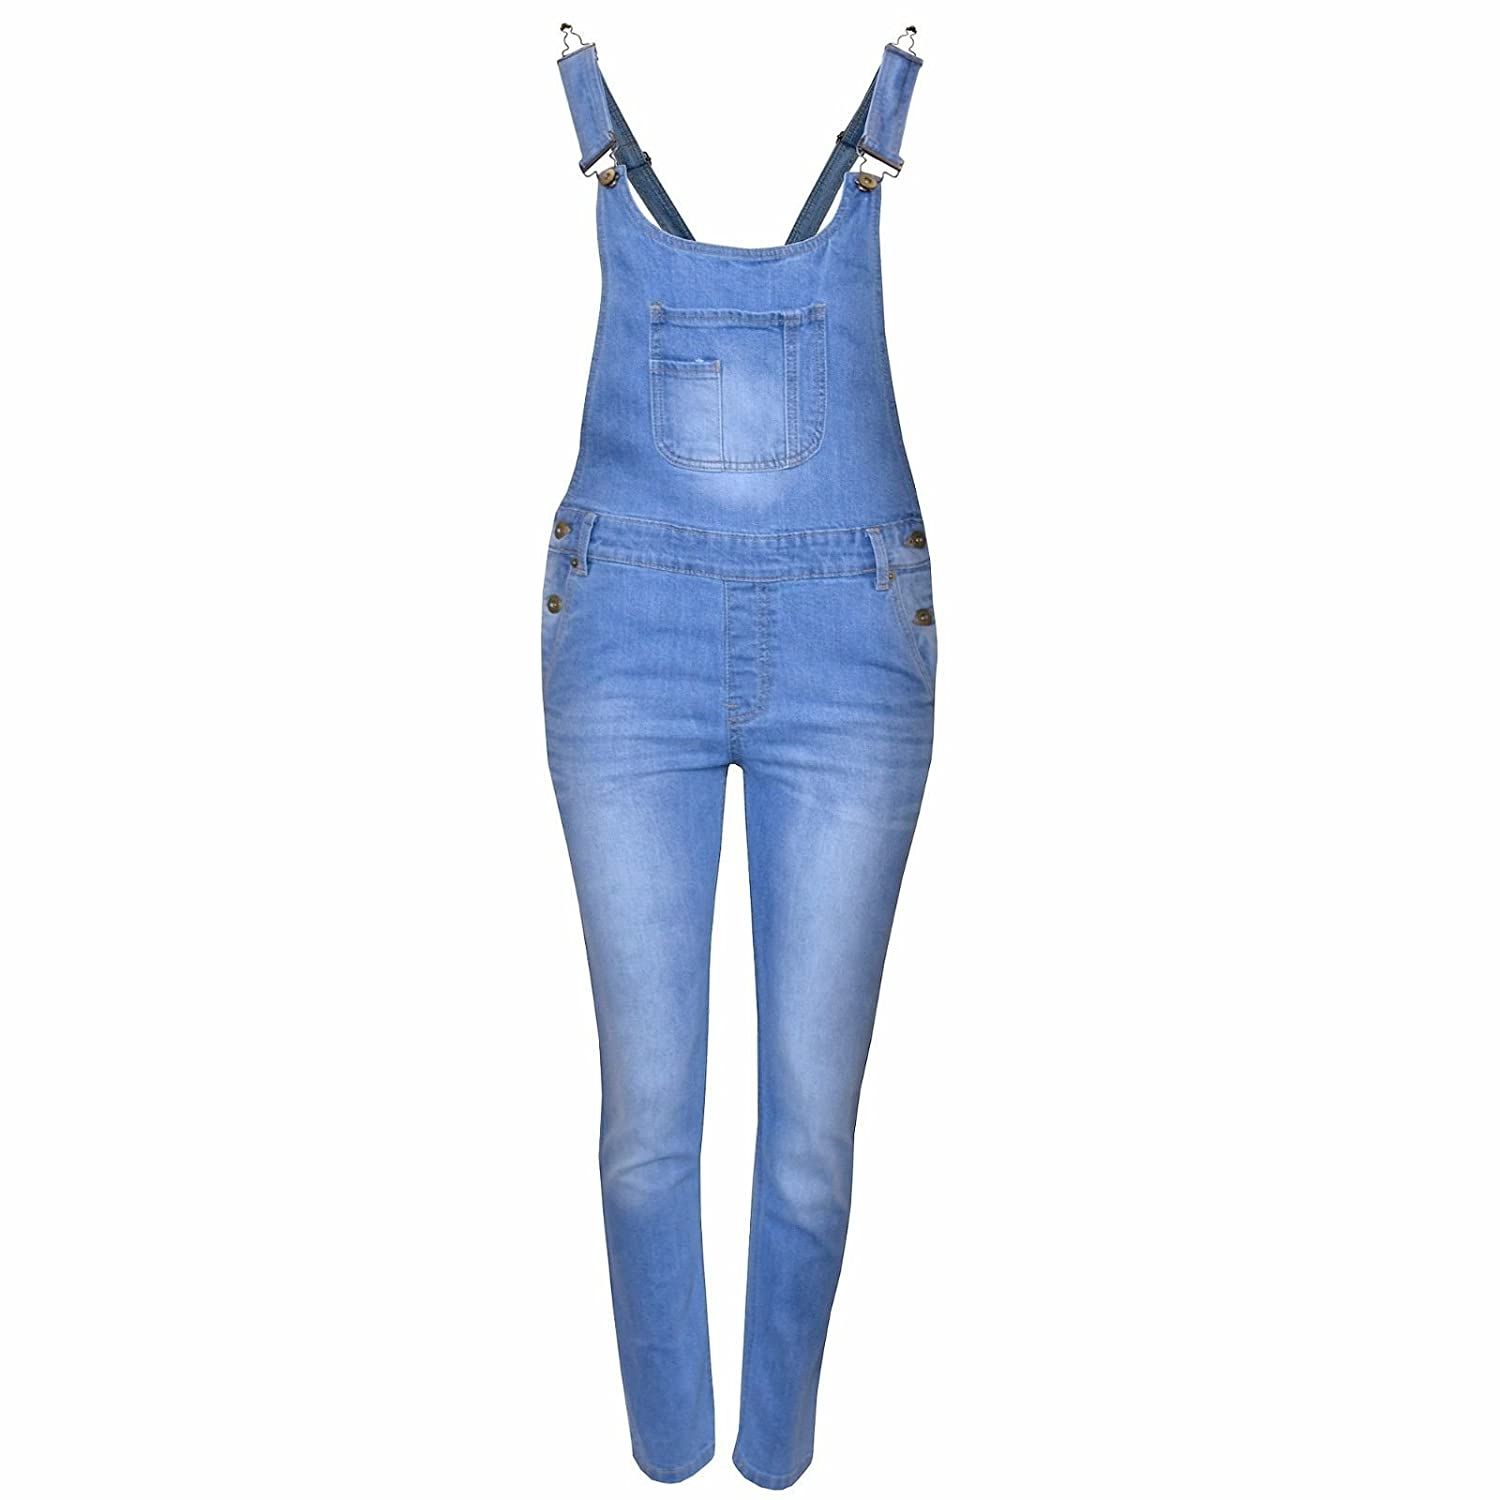 New in Stylish Summer Girl's Stretch Denim Dungaree Shorts and Long Jumpsuit Ages 7/8, 9/10, 11/12 & 13 (Age 13, Light Blue Long)